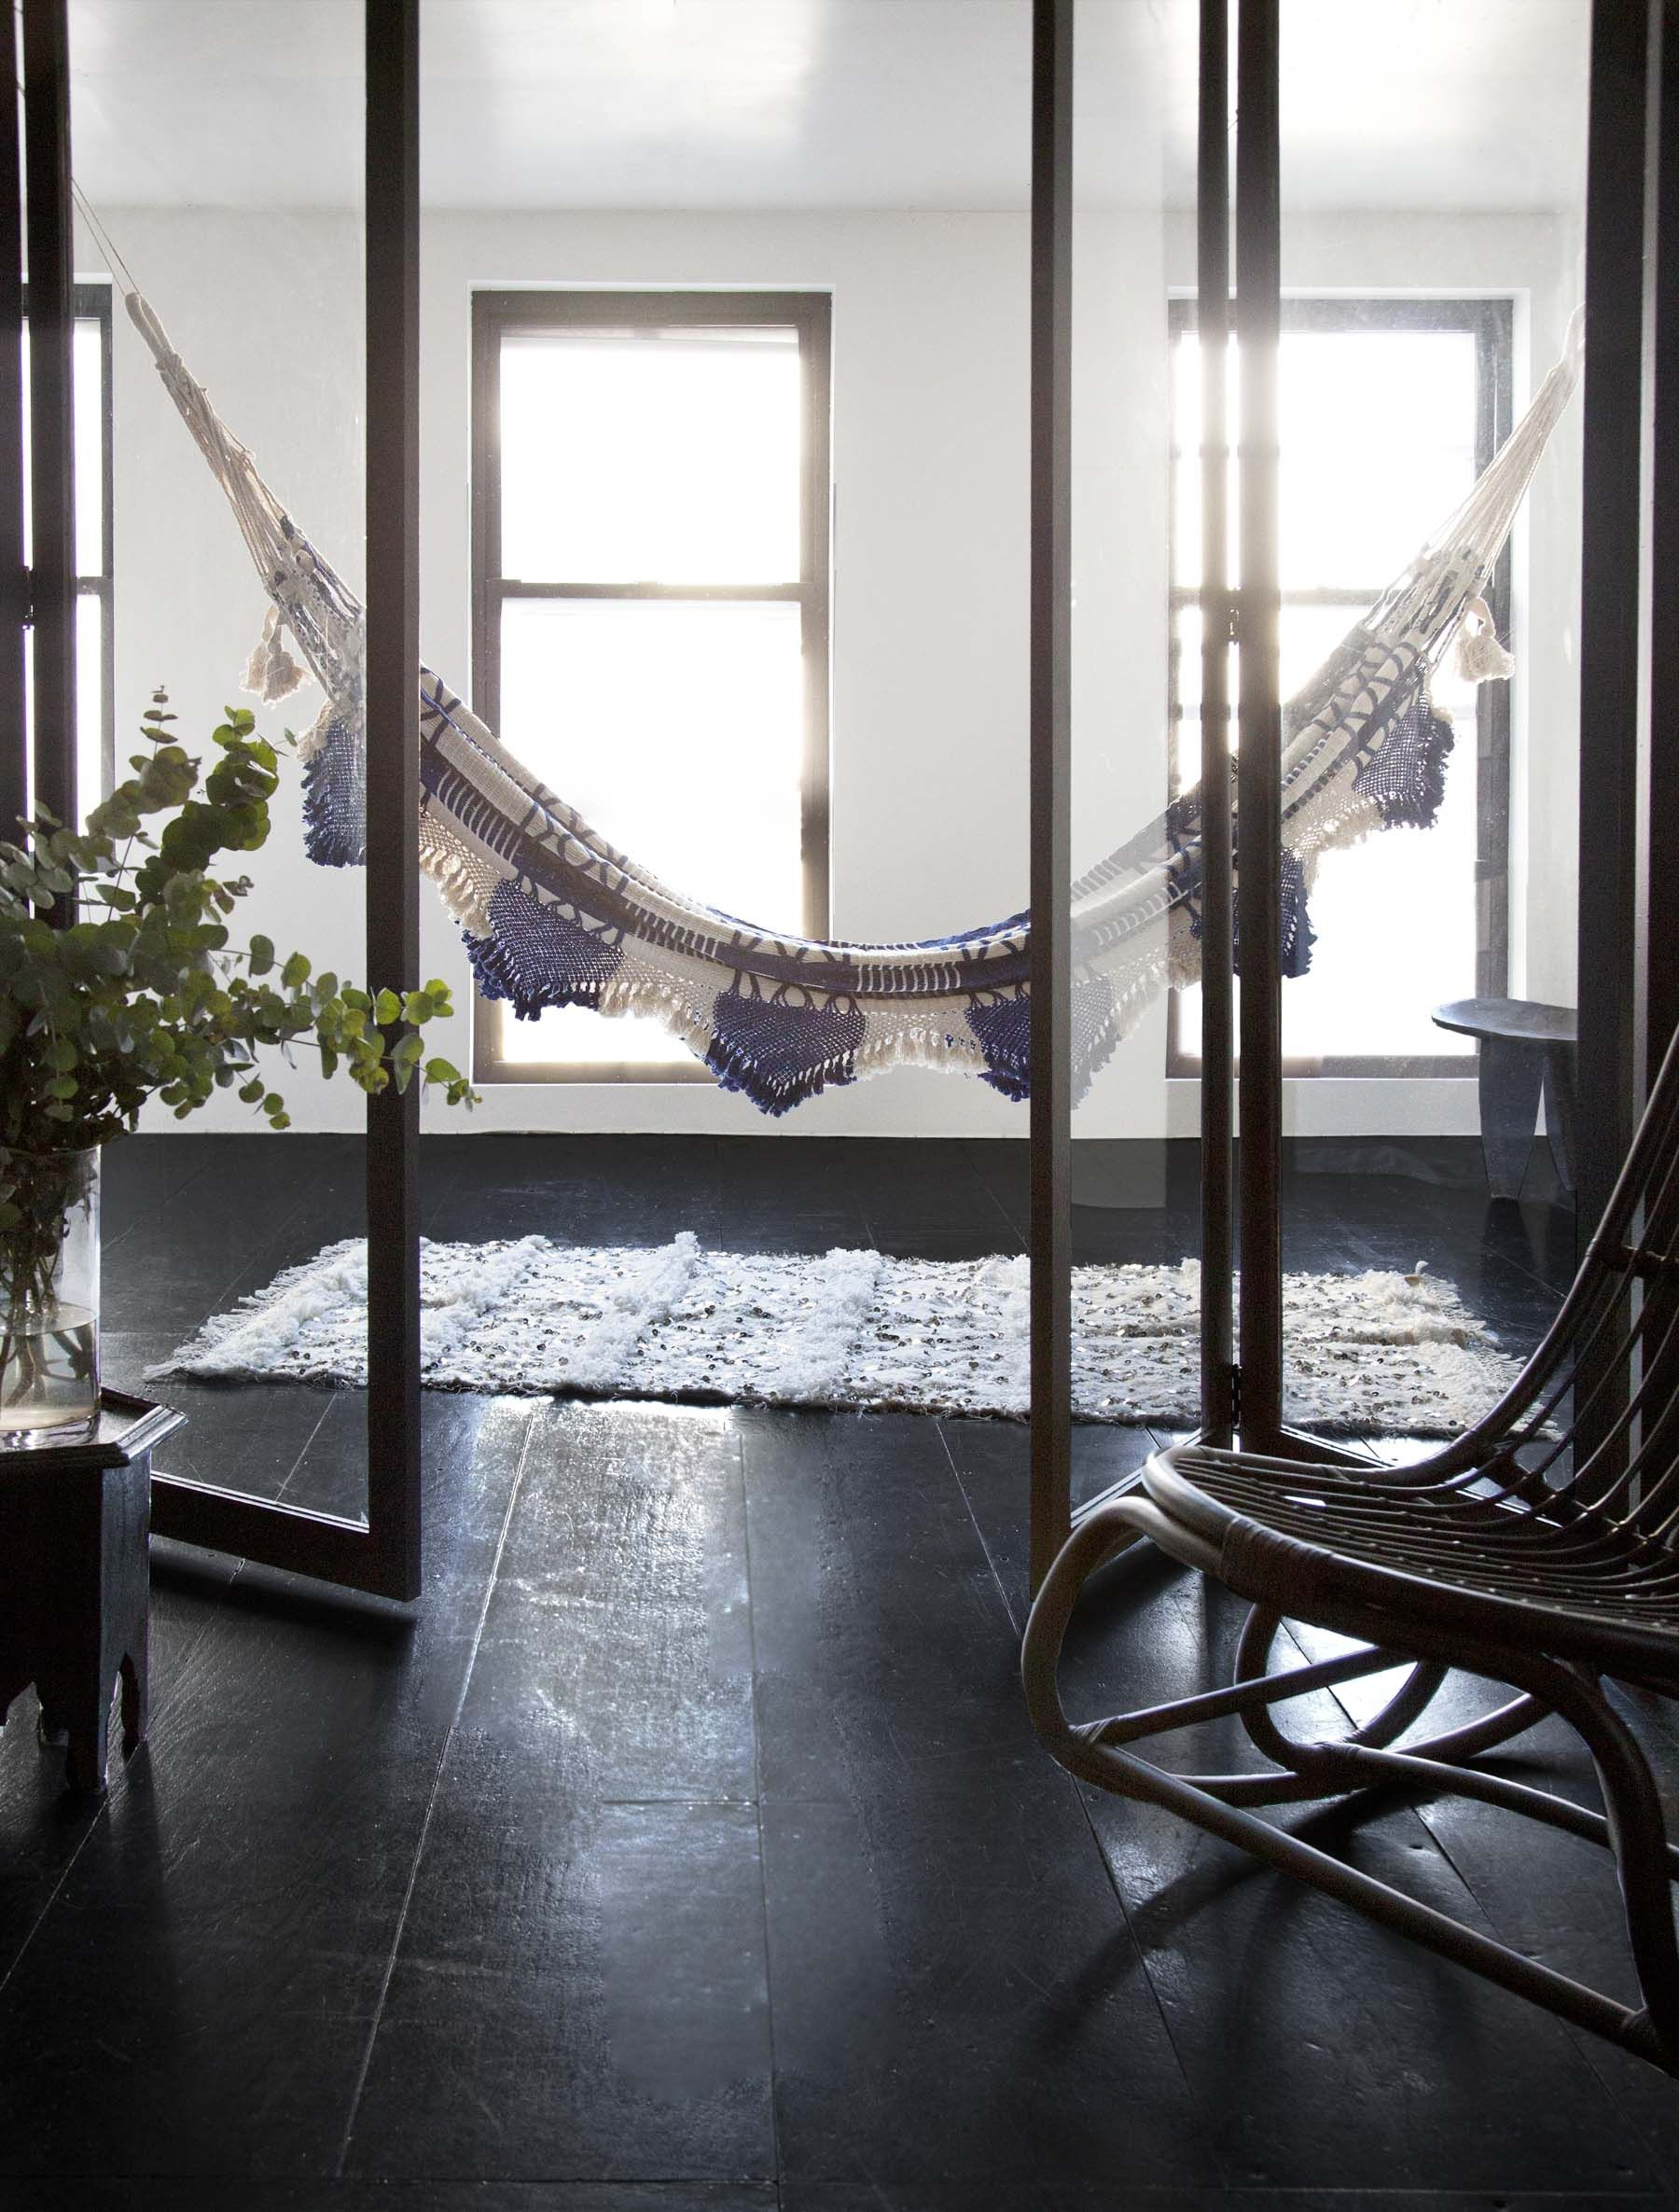 feeling the relaxed and lazy moods of this bolivian hammock from l on swiss home design, egyptian home design, jamaican home design, liberian home design, american home design, belgian home design, saudi home design, moroccan home design, iranian home design, pakistani home design, israeli home design,